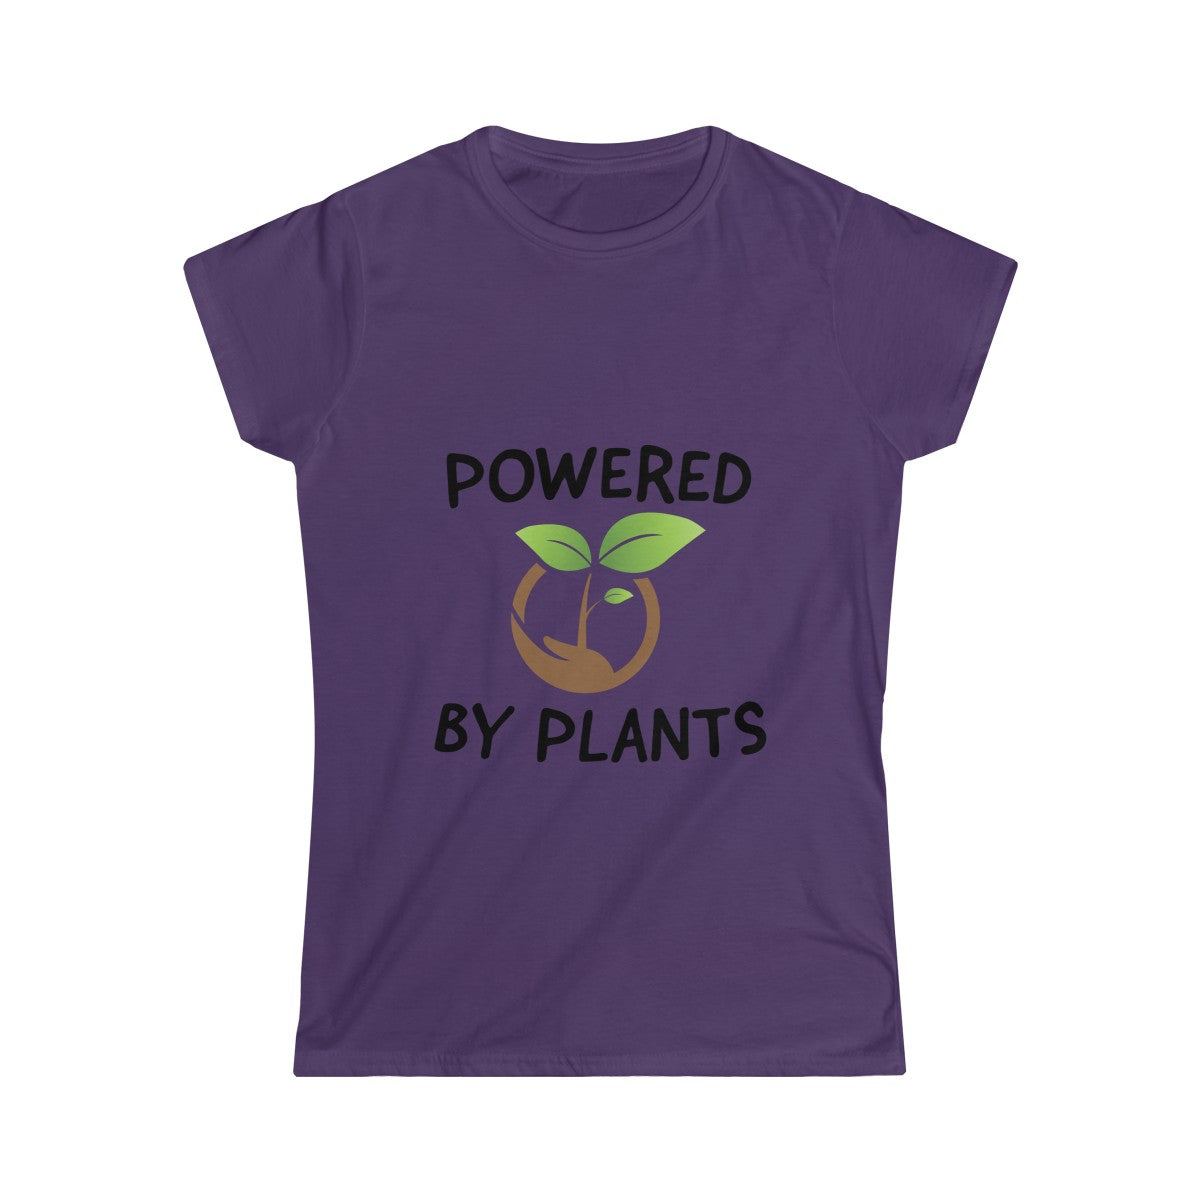 Powered By Plants - Slim Fit T-Shirt - My Vegan Menu